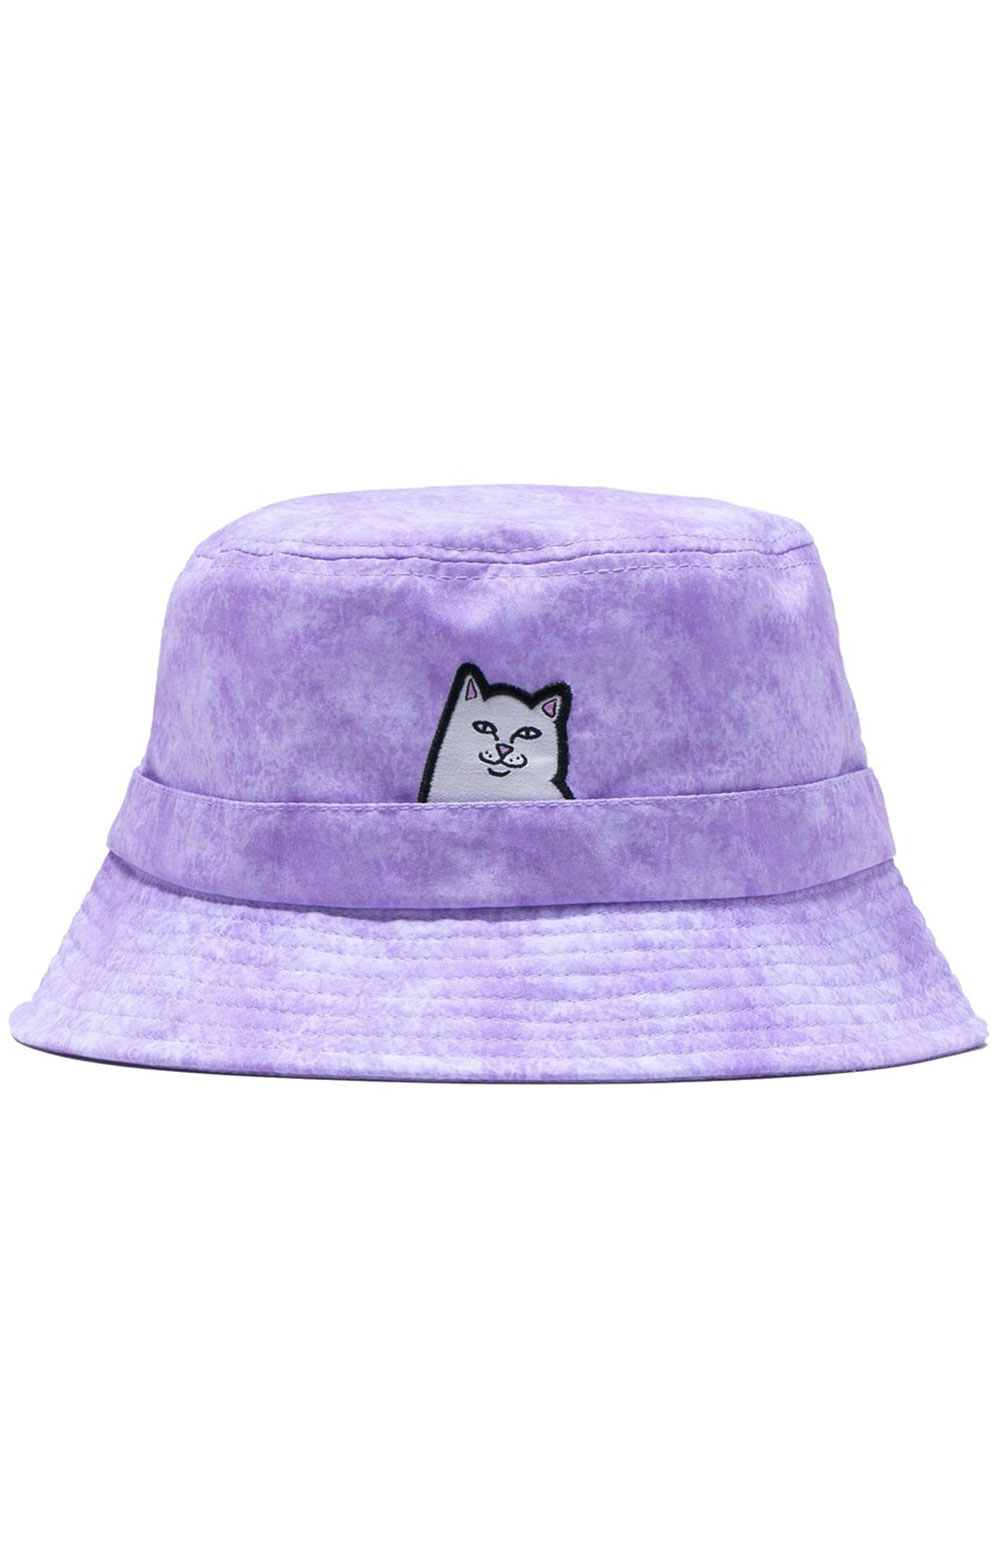 Lord Nermal Bucket Hat - Lavender Mineral Wash